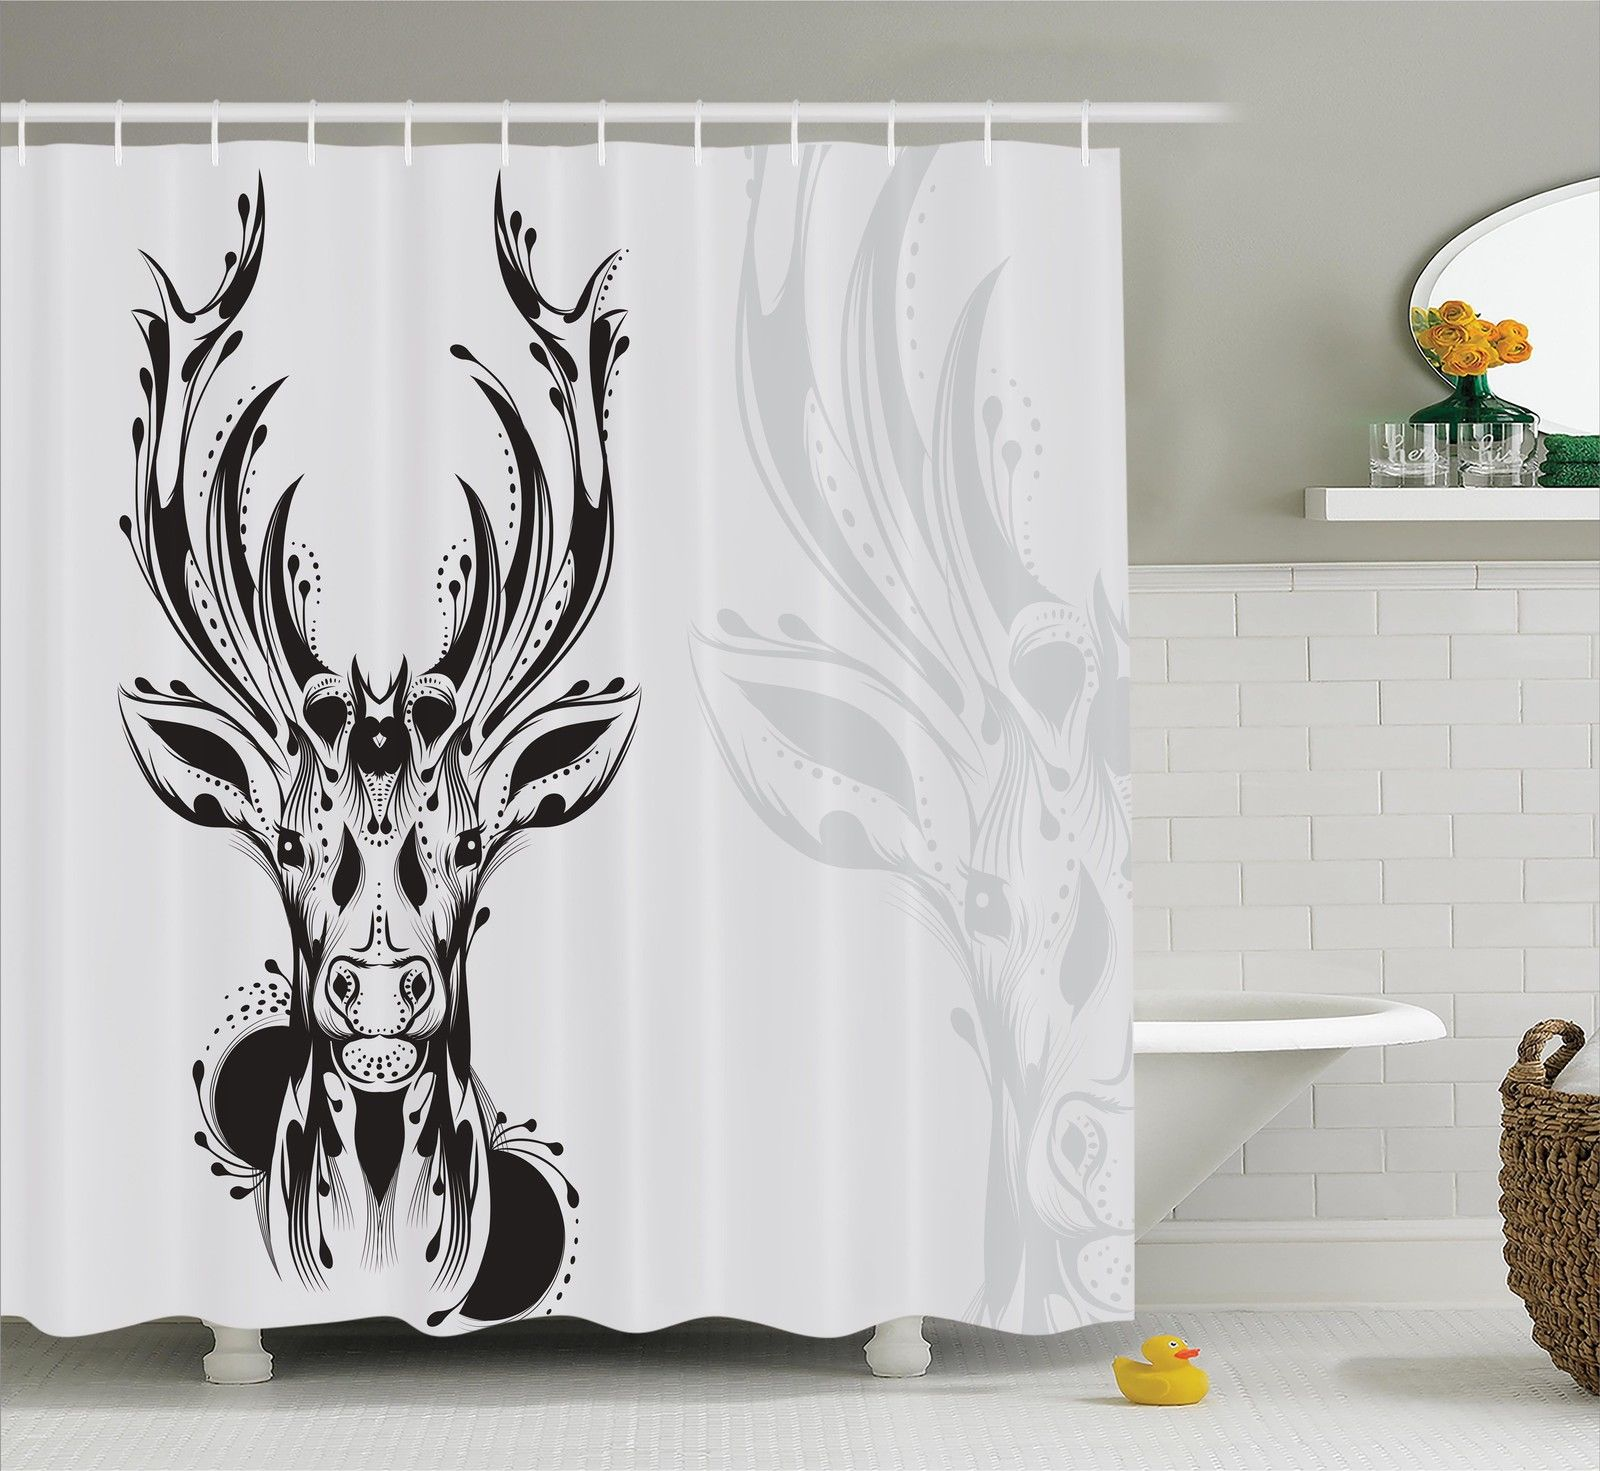 Antlers Decor Shower Curtain Set, Tribal Deer Head Shadow Art Emblem  Wilderness Ornamental Monochrome Artwork